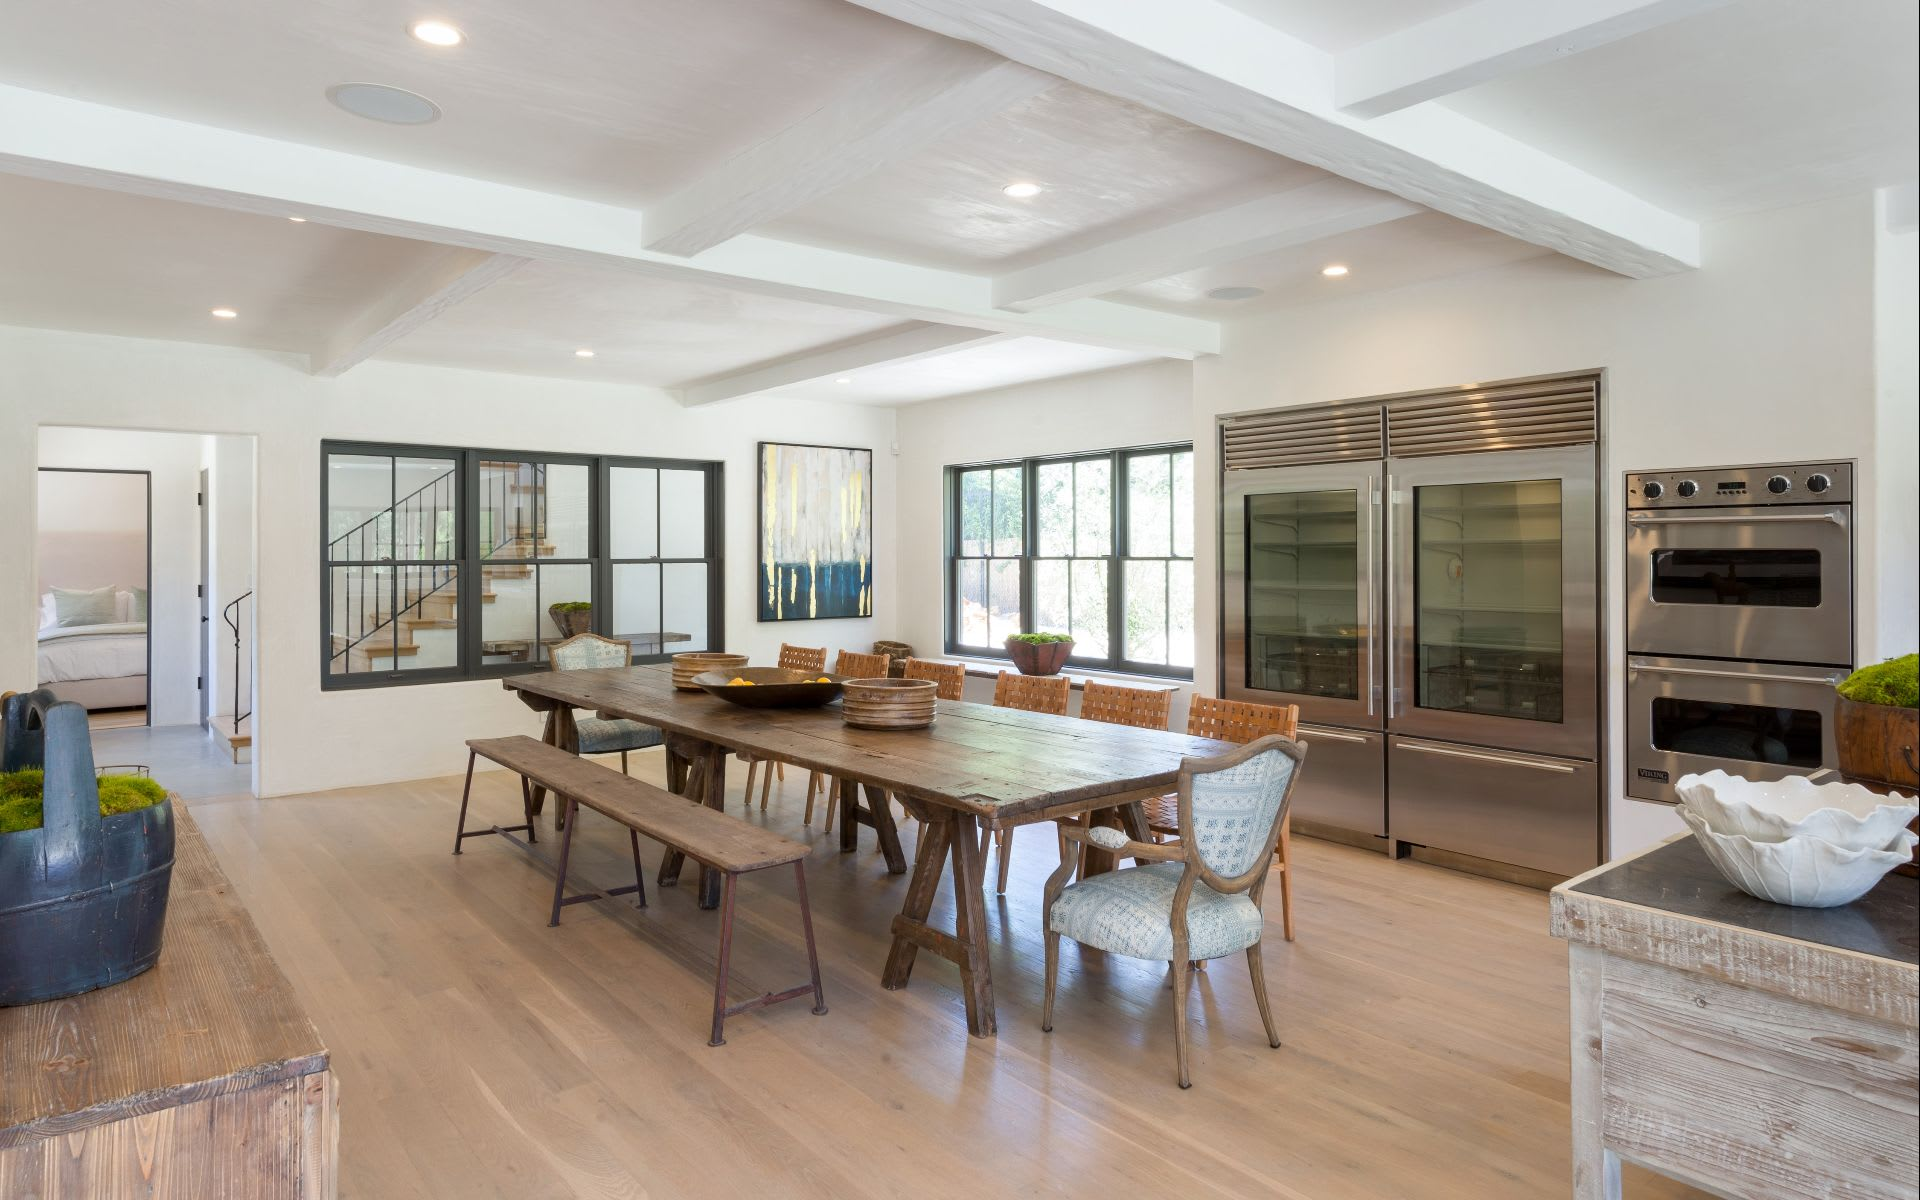 Additional photo for property listing at 28929 Bison Ct 28929 Bison Ct Malibu, California,90265 United States